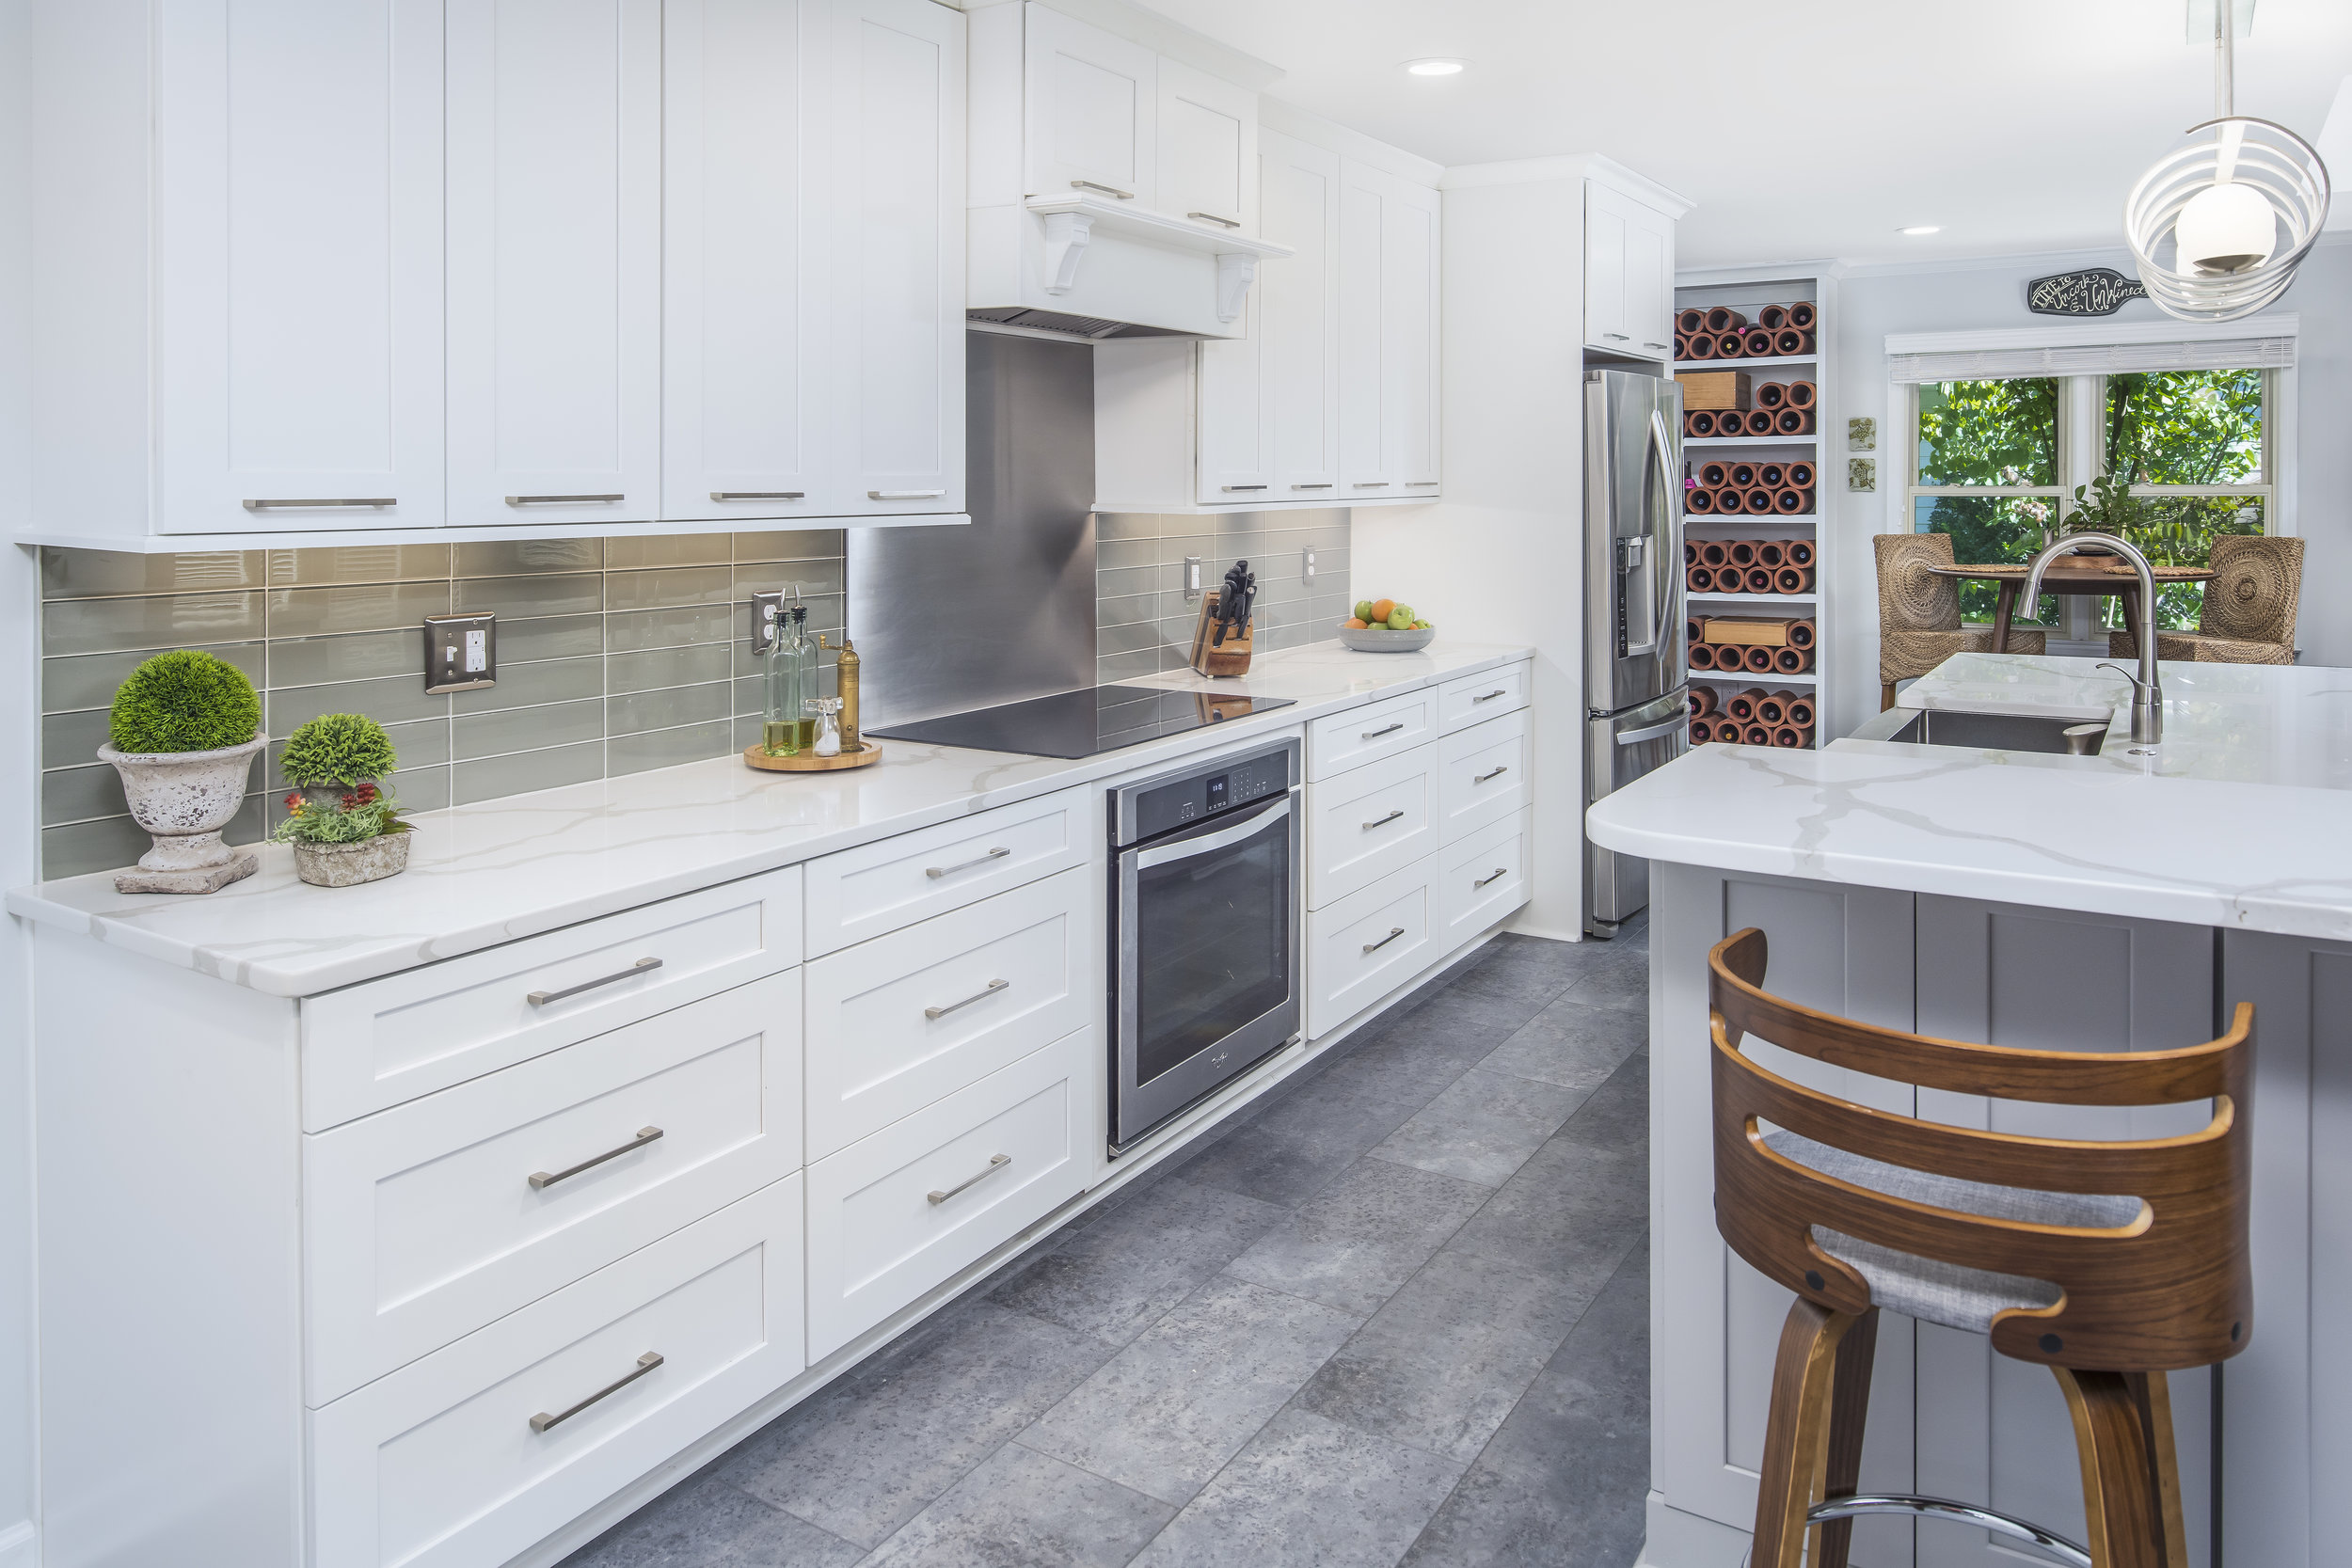 kitchen remodel with cabinets, recessed lighting, island, bar seating